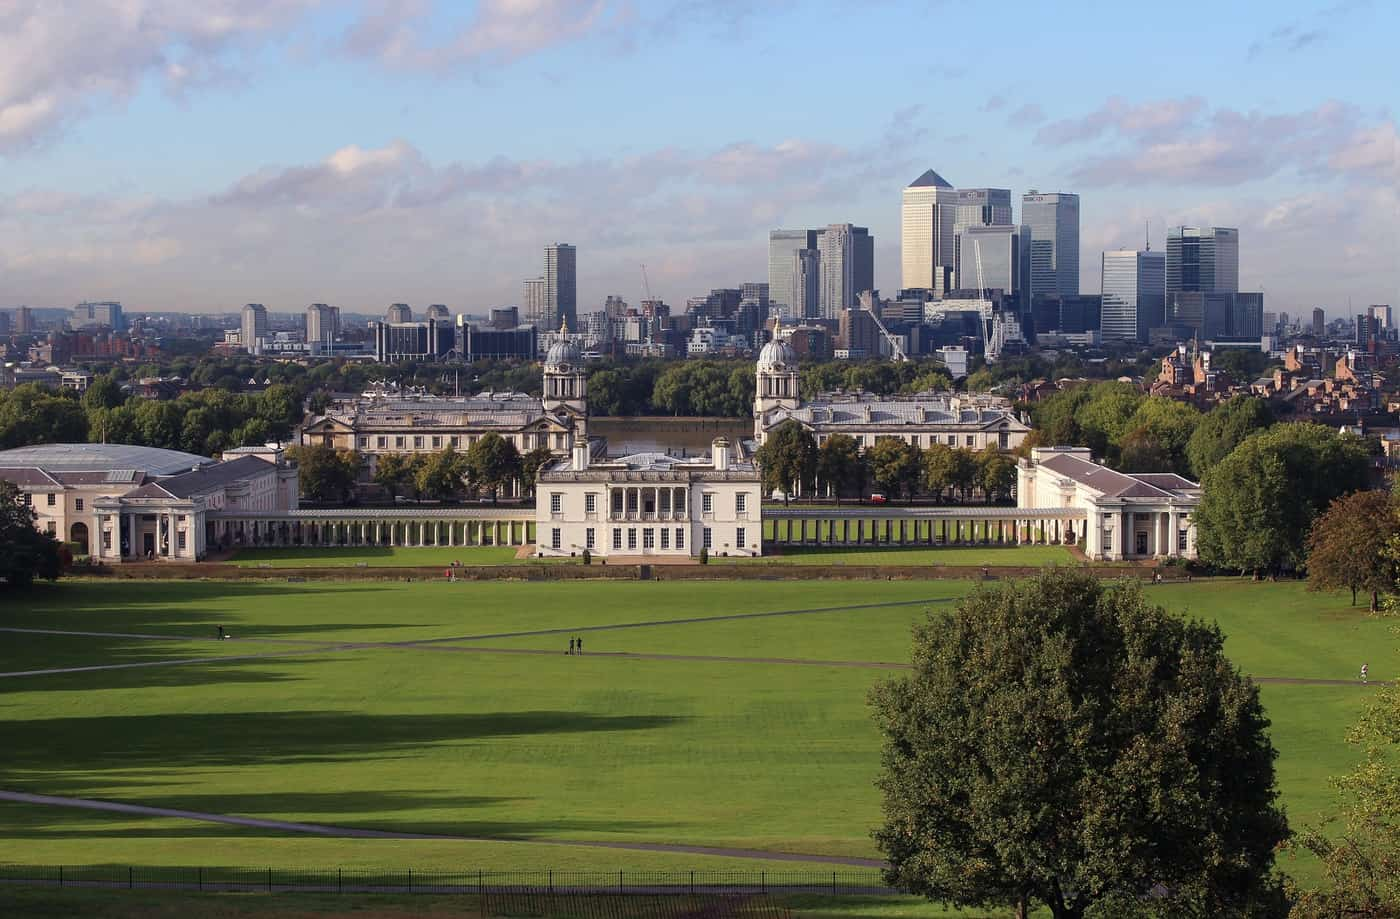 Greenwich Park and Buildings in London